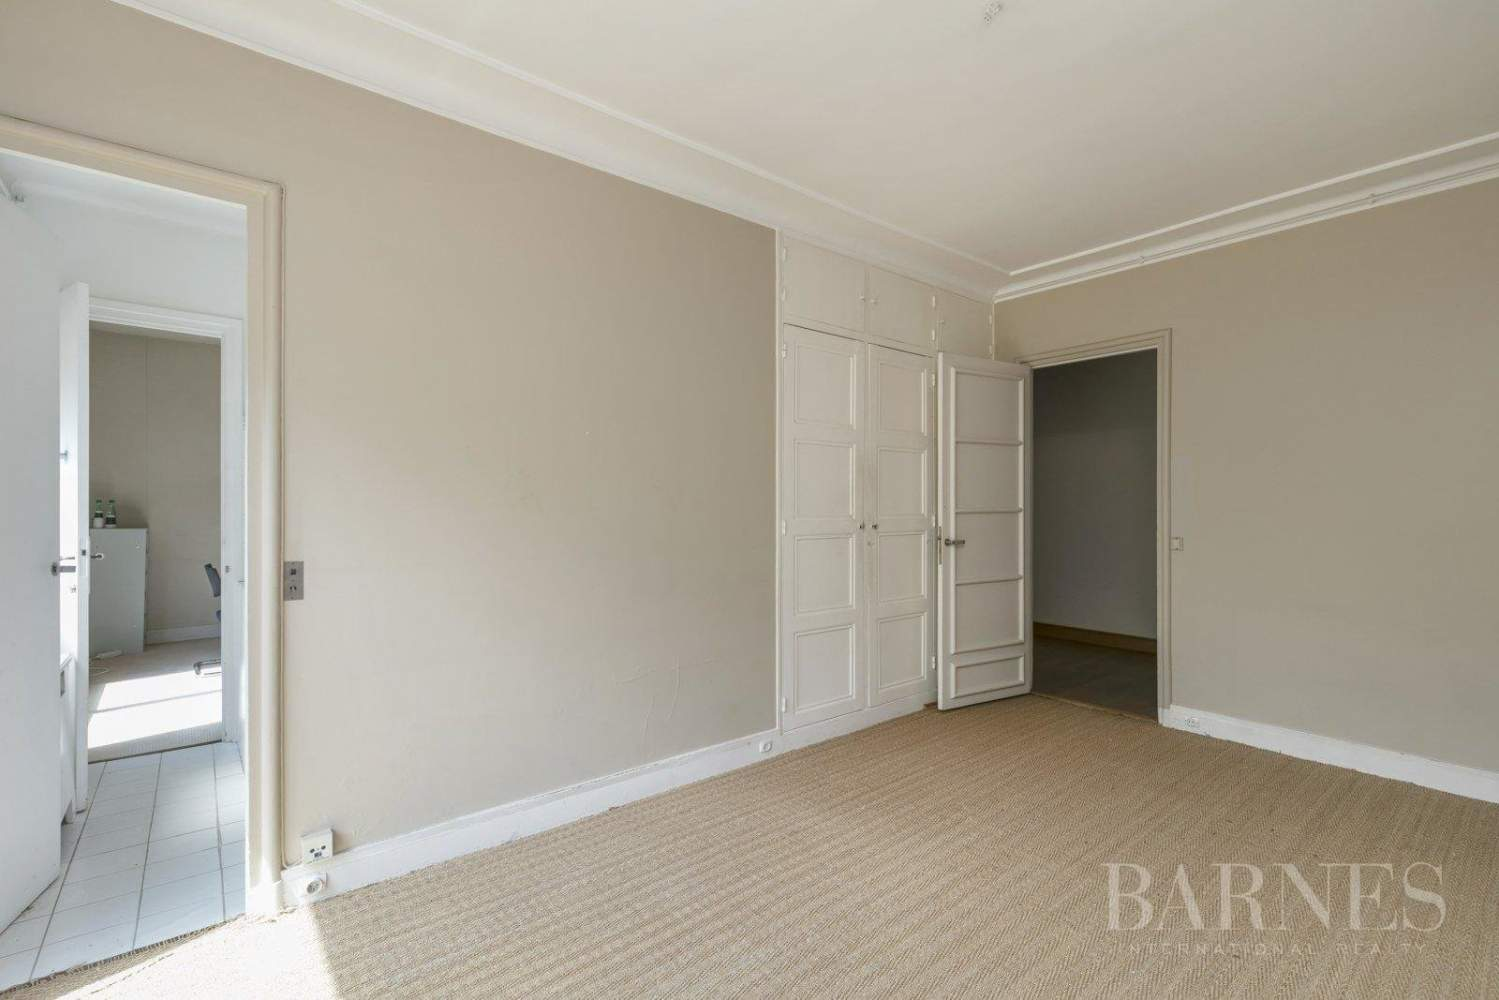 3-BEDROOM APARTMENT - CLEAR VIEWS - BALCONIES - NEUILLY / CHÂTEAU - NORTIER picture 3